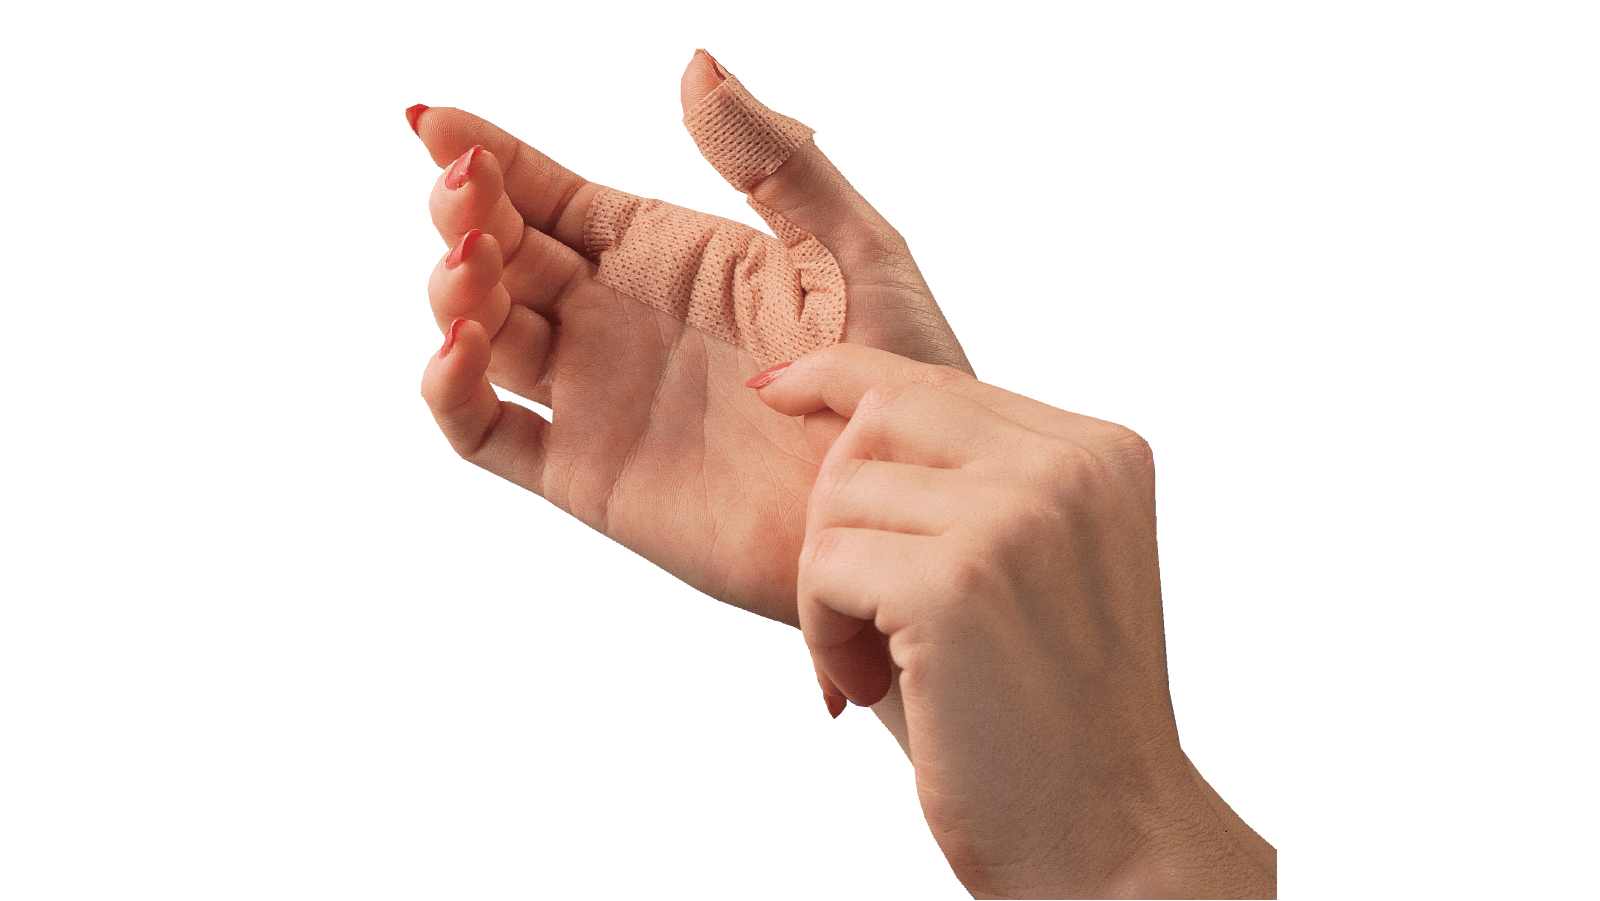 Spenco 2nd skin adhesive knit for blister protection applied to a hand and thumb